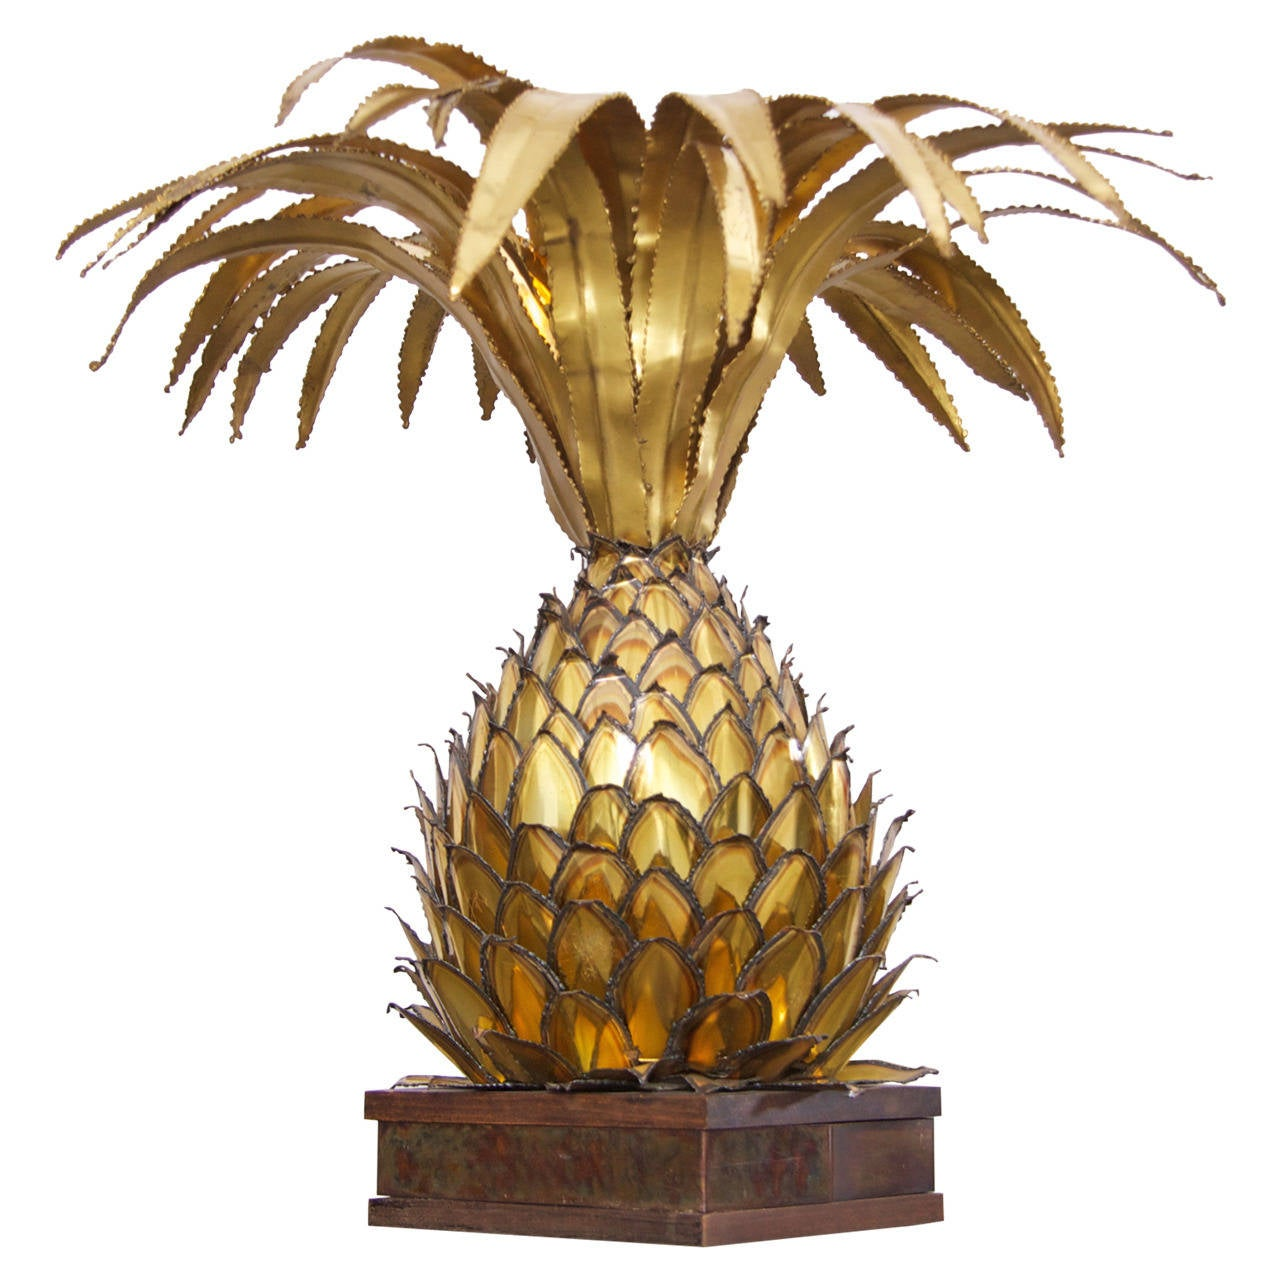 brass pineapple table lamp in palm tree style for sale at 1stdibs. Black Bedroom Furniture Sets. Home Design Ideas